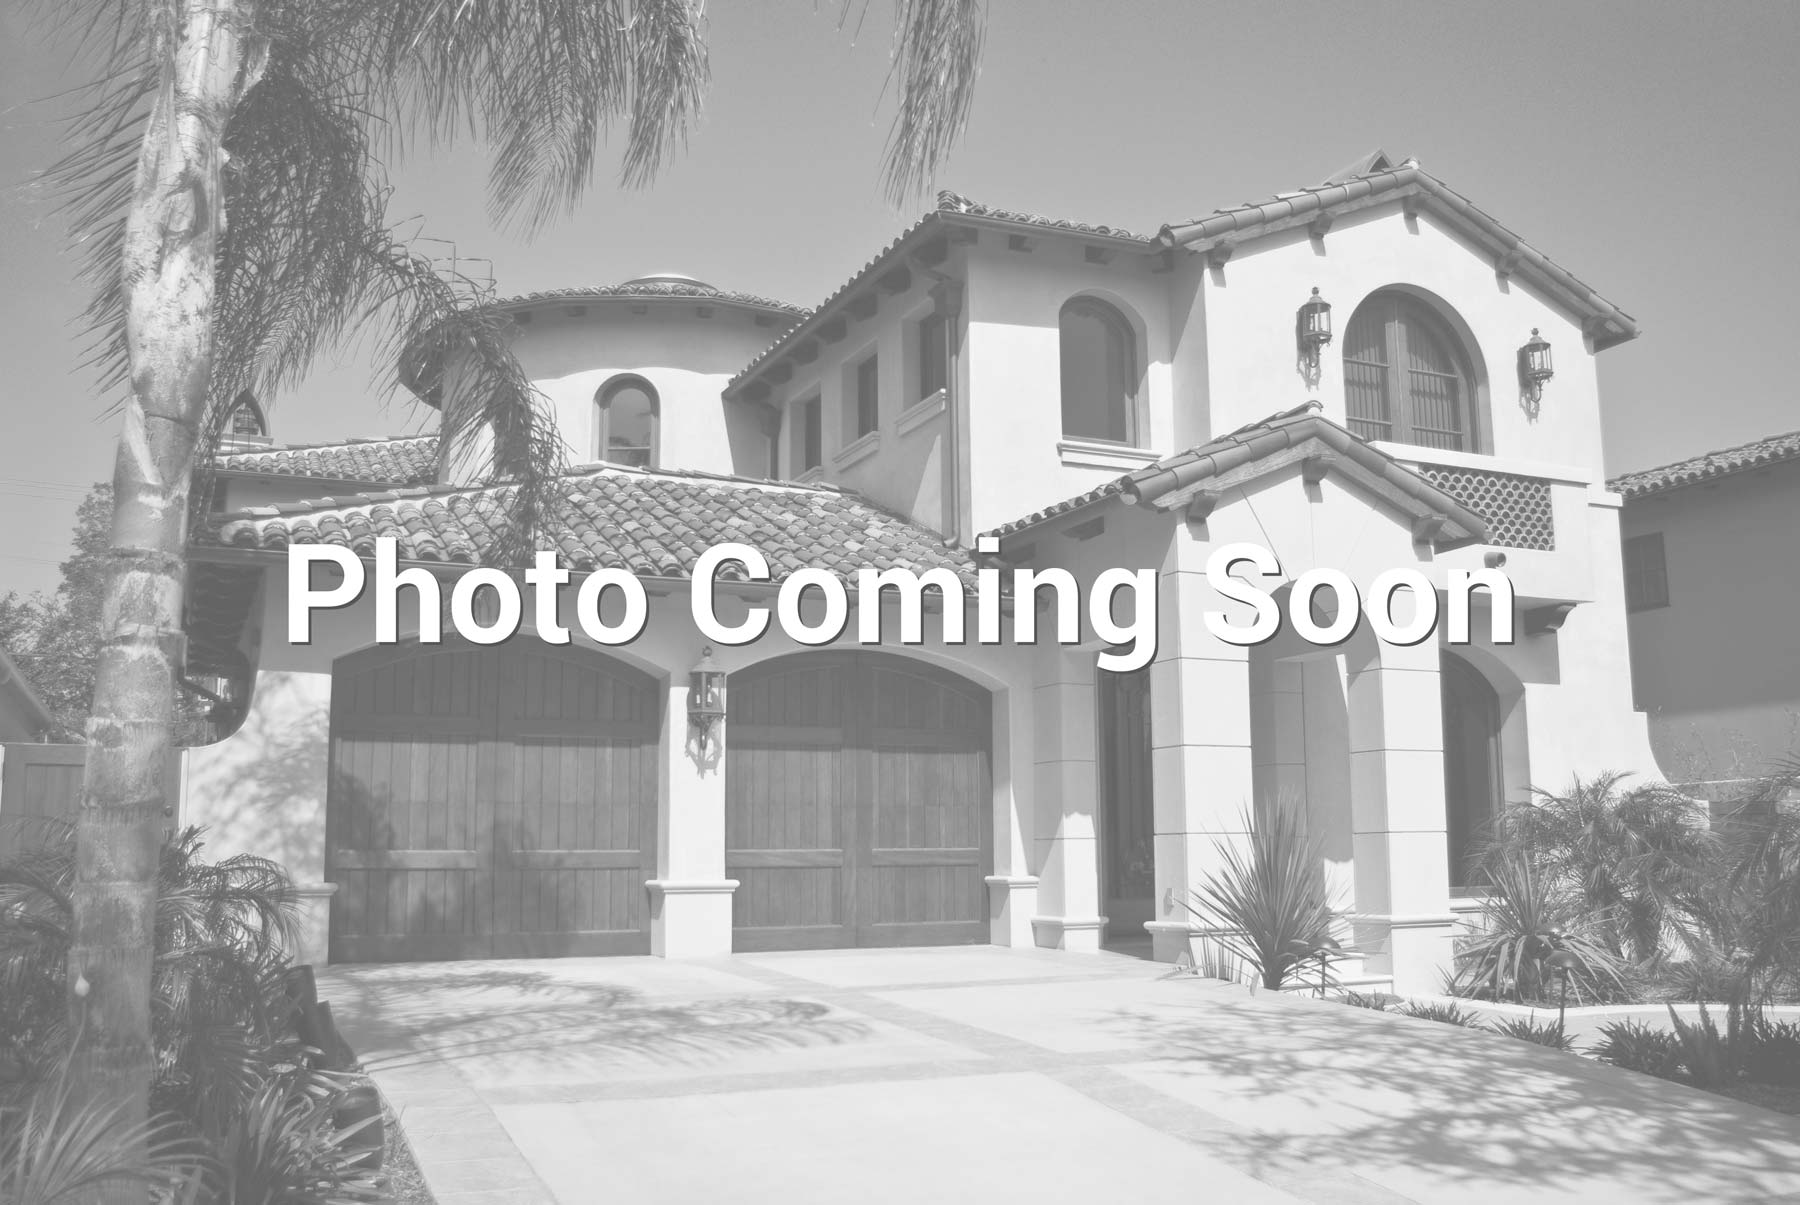 $225,000 - 2Br/1Ba - Home for Sale in Maryvale Terrace No. 53-b, Phoenix